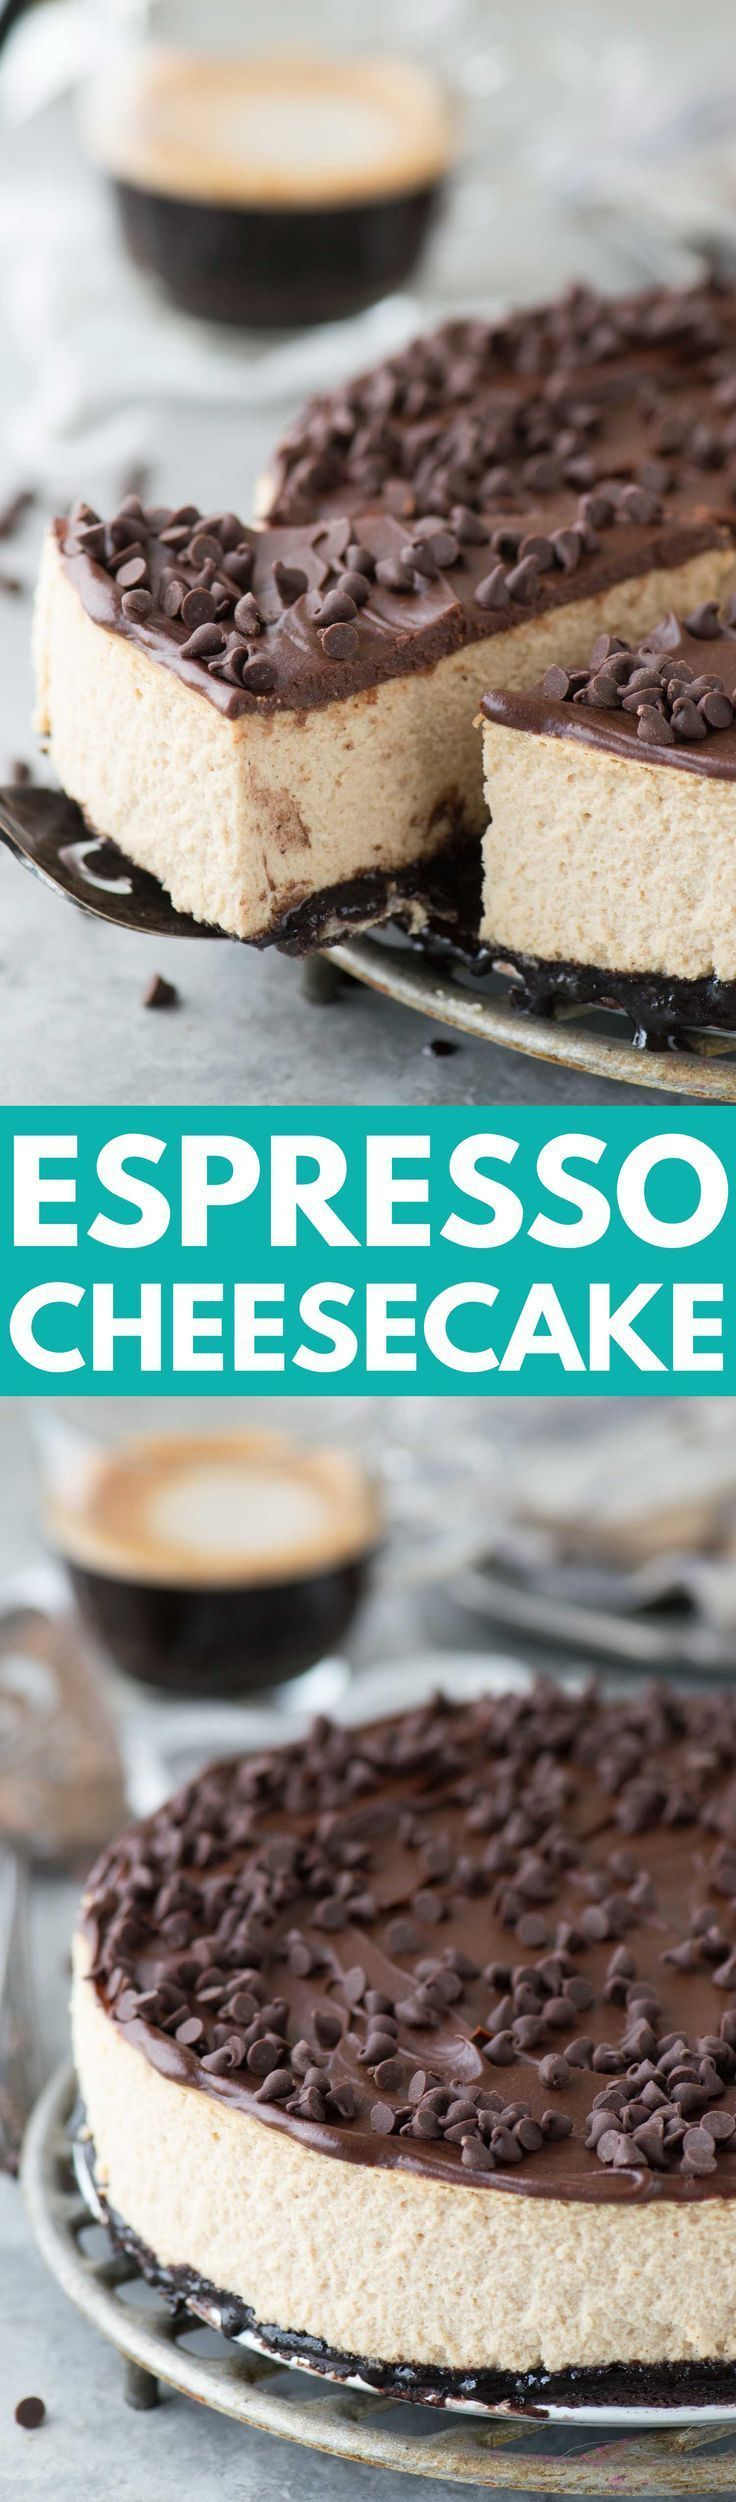 The most amazing espresso cheesecake with an oreo crust and a layer of chocolate ganache! This cheesecake has real espresso in it! #CoffeeDrinks